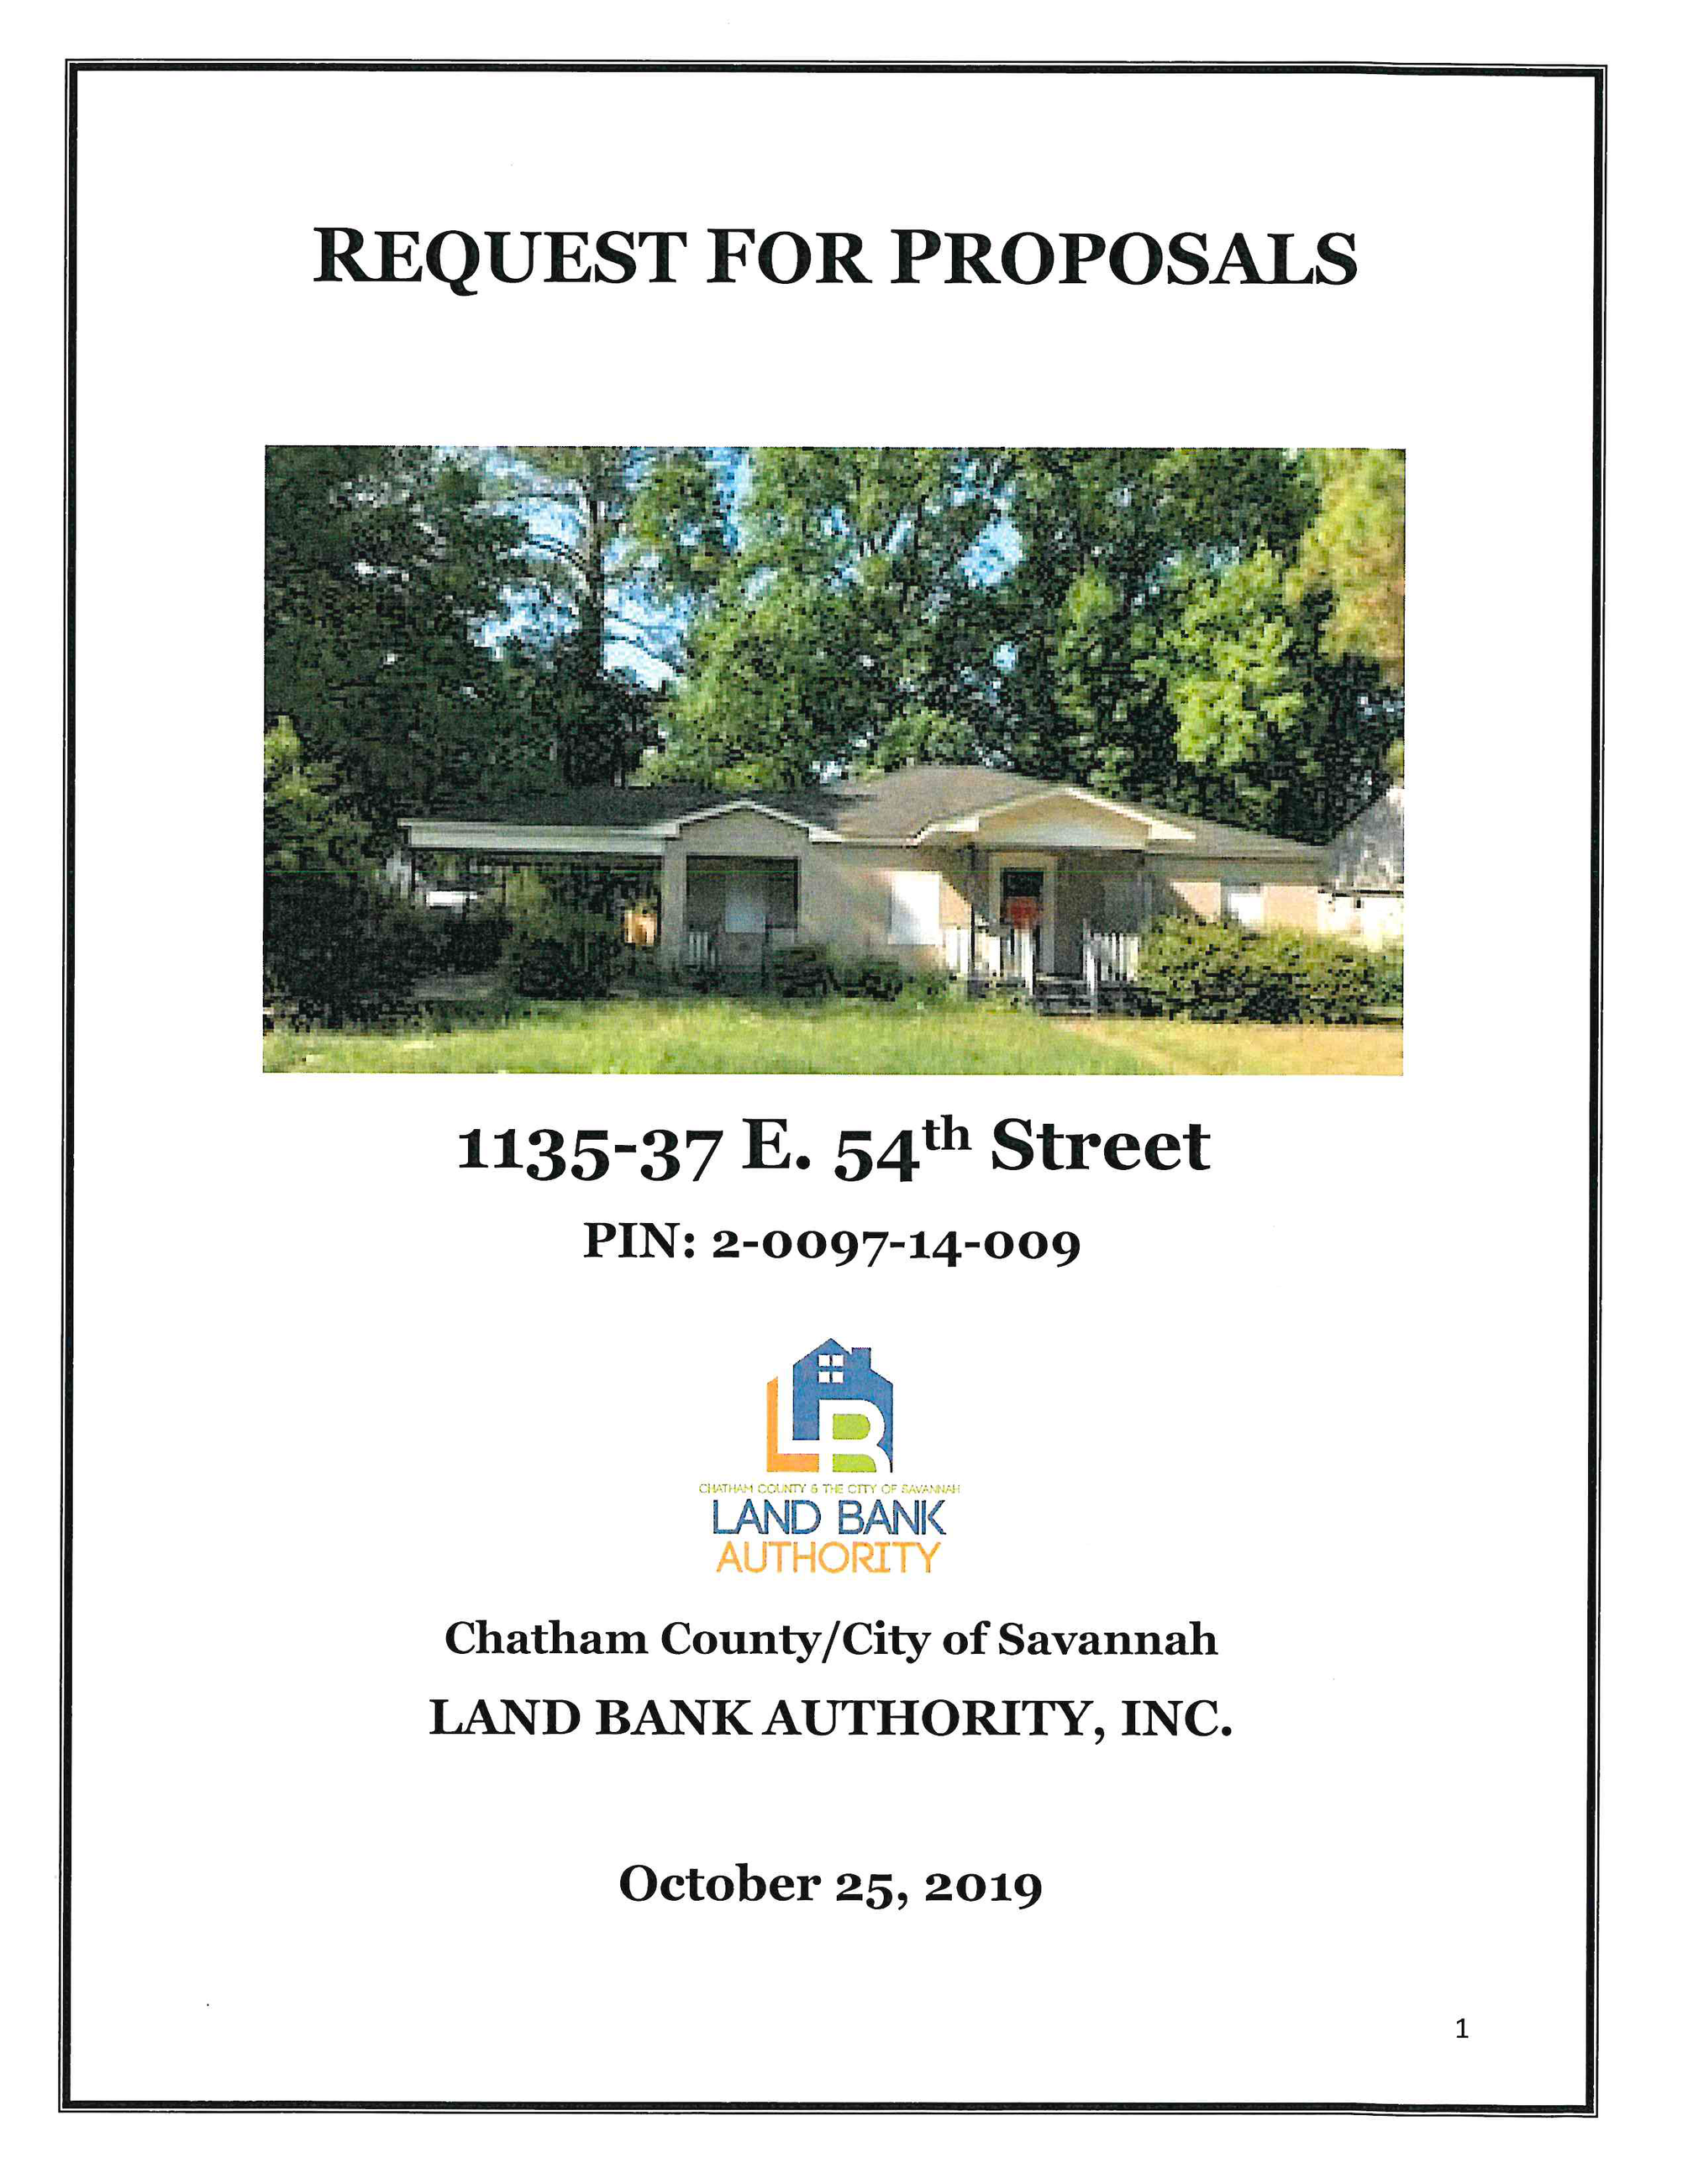 RFP Final 1135-37 E 54th St.Oct 19_Page_01